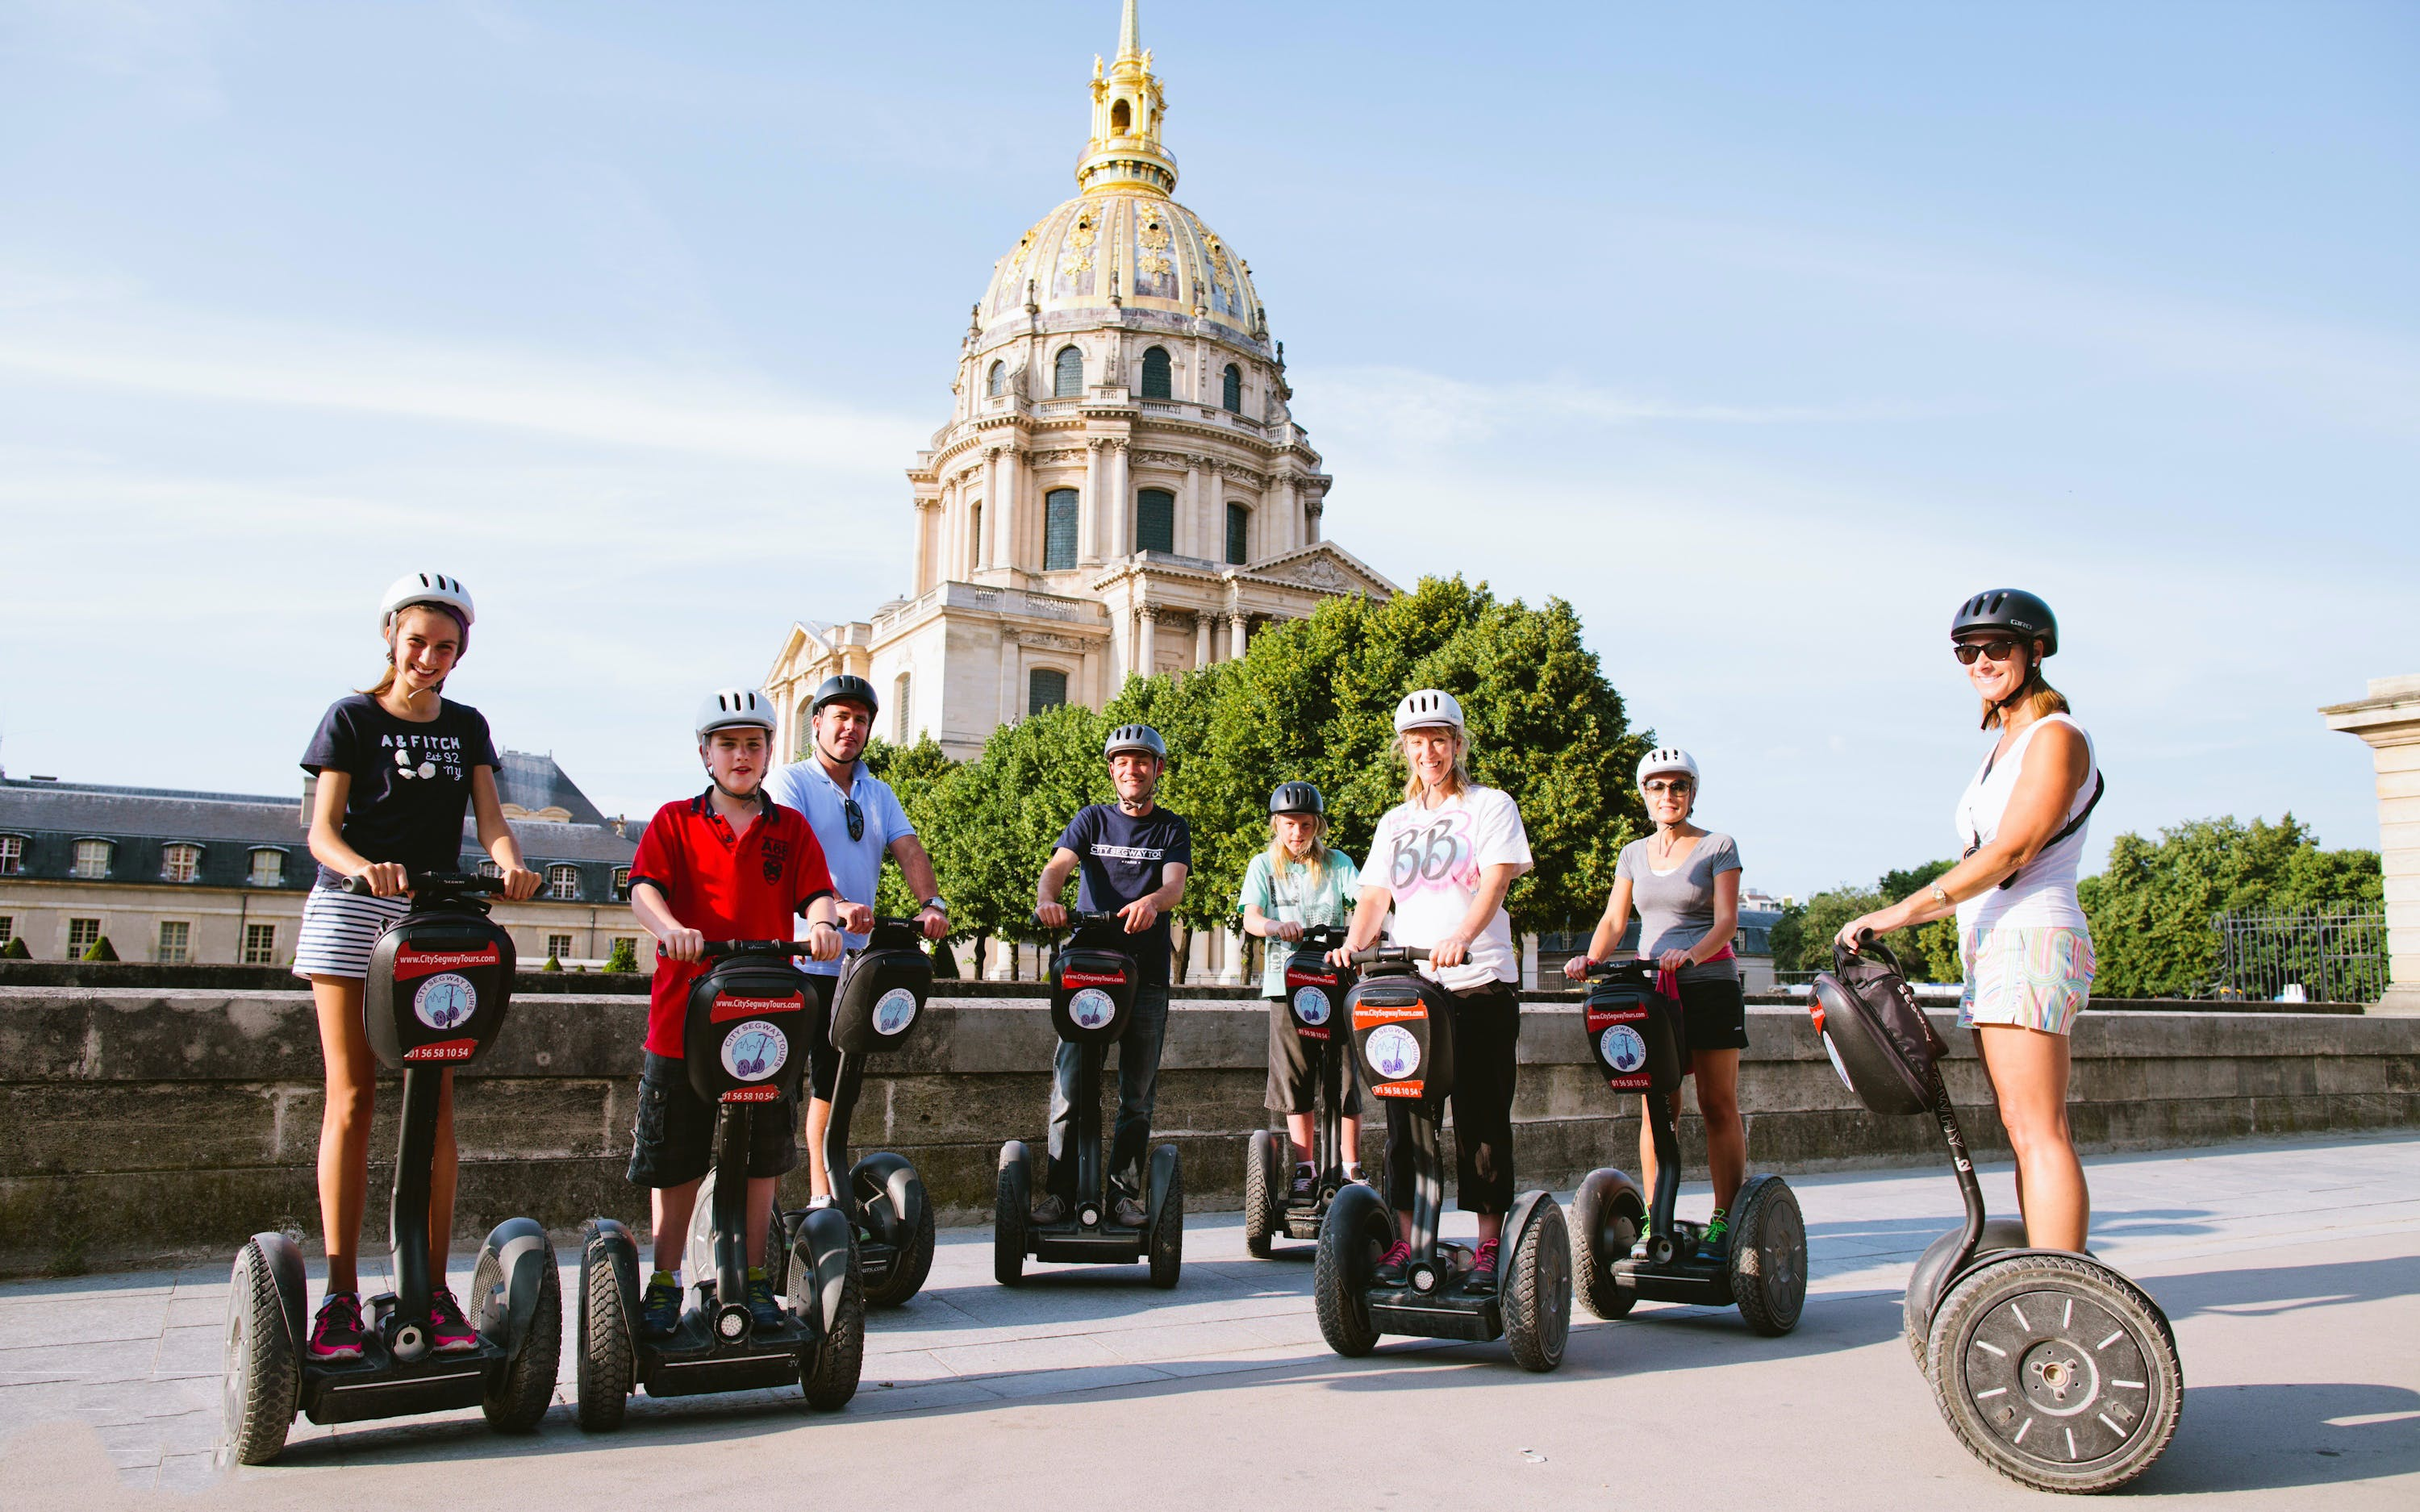 palace of versailles segway tour at castle park -1